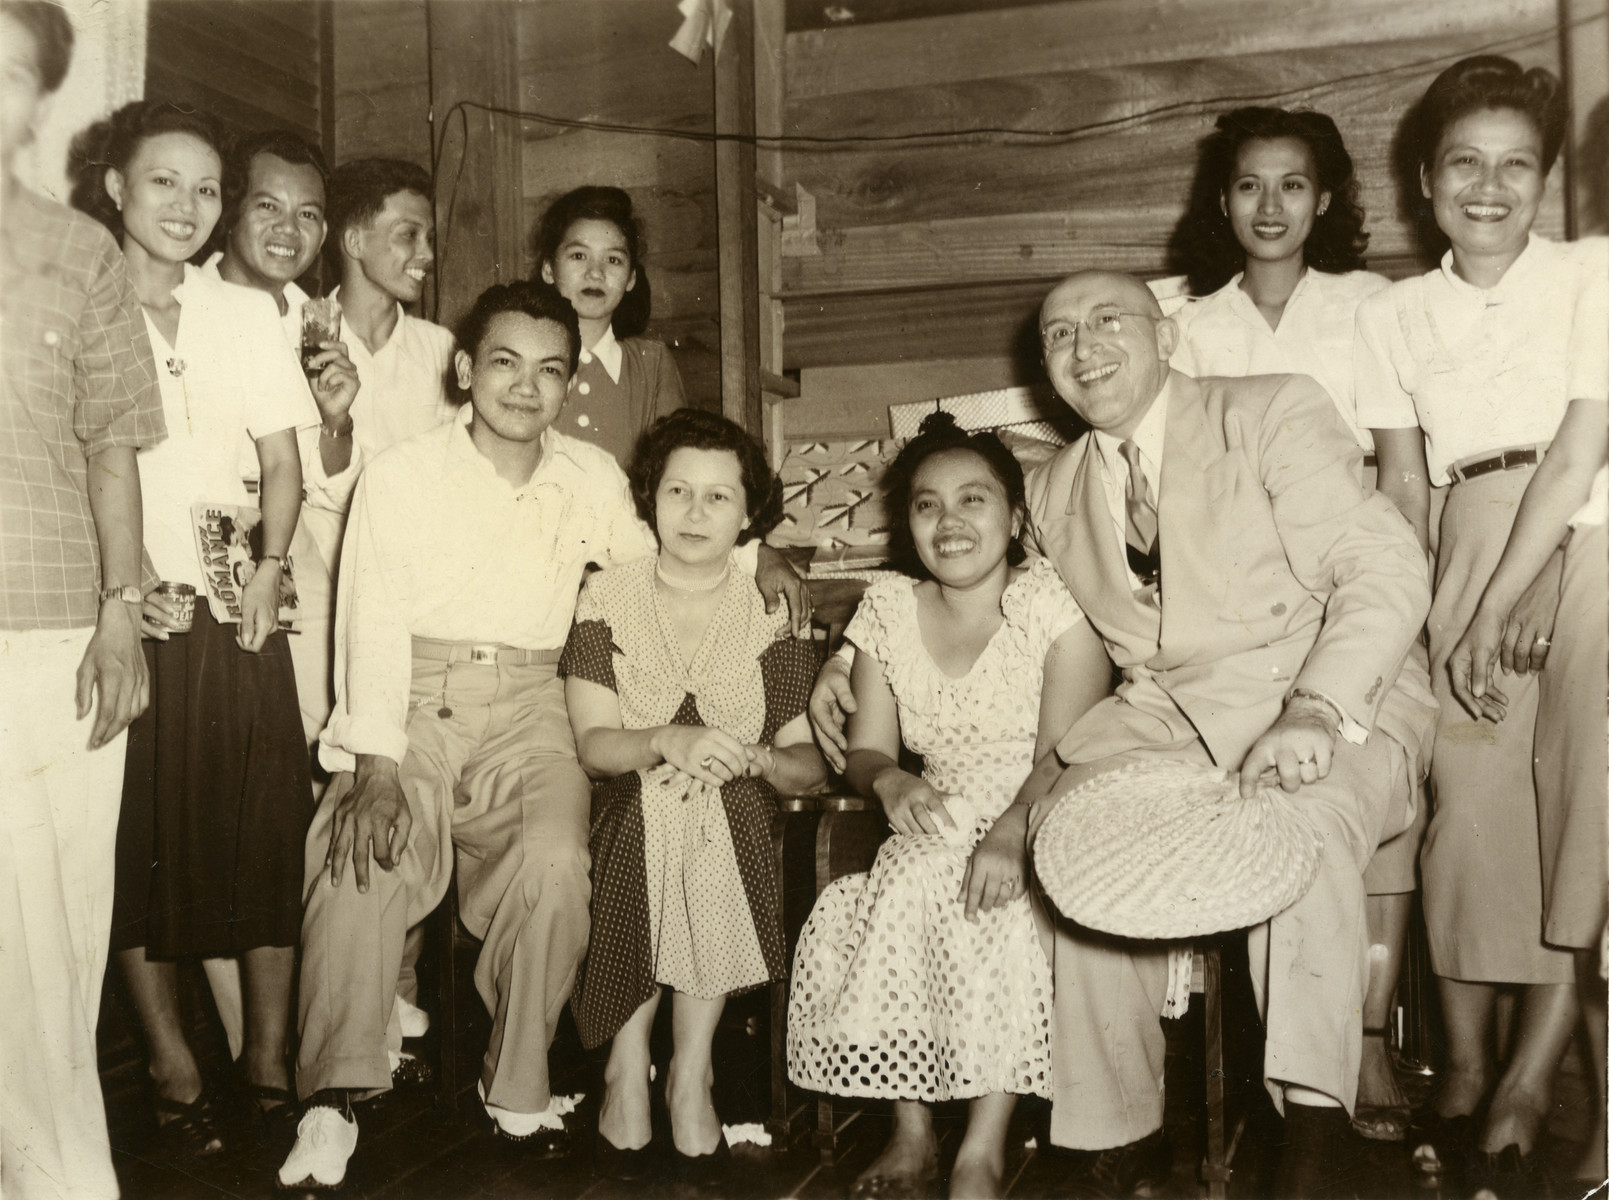 Saul and Erna Cassel pose with the staff of Berg's department store.